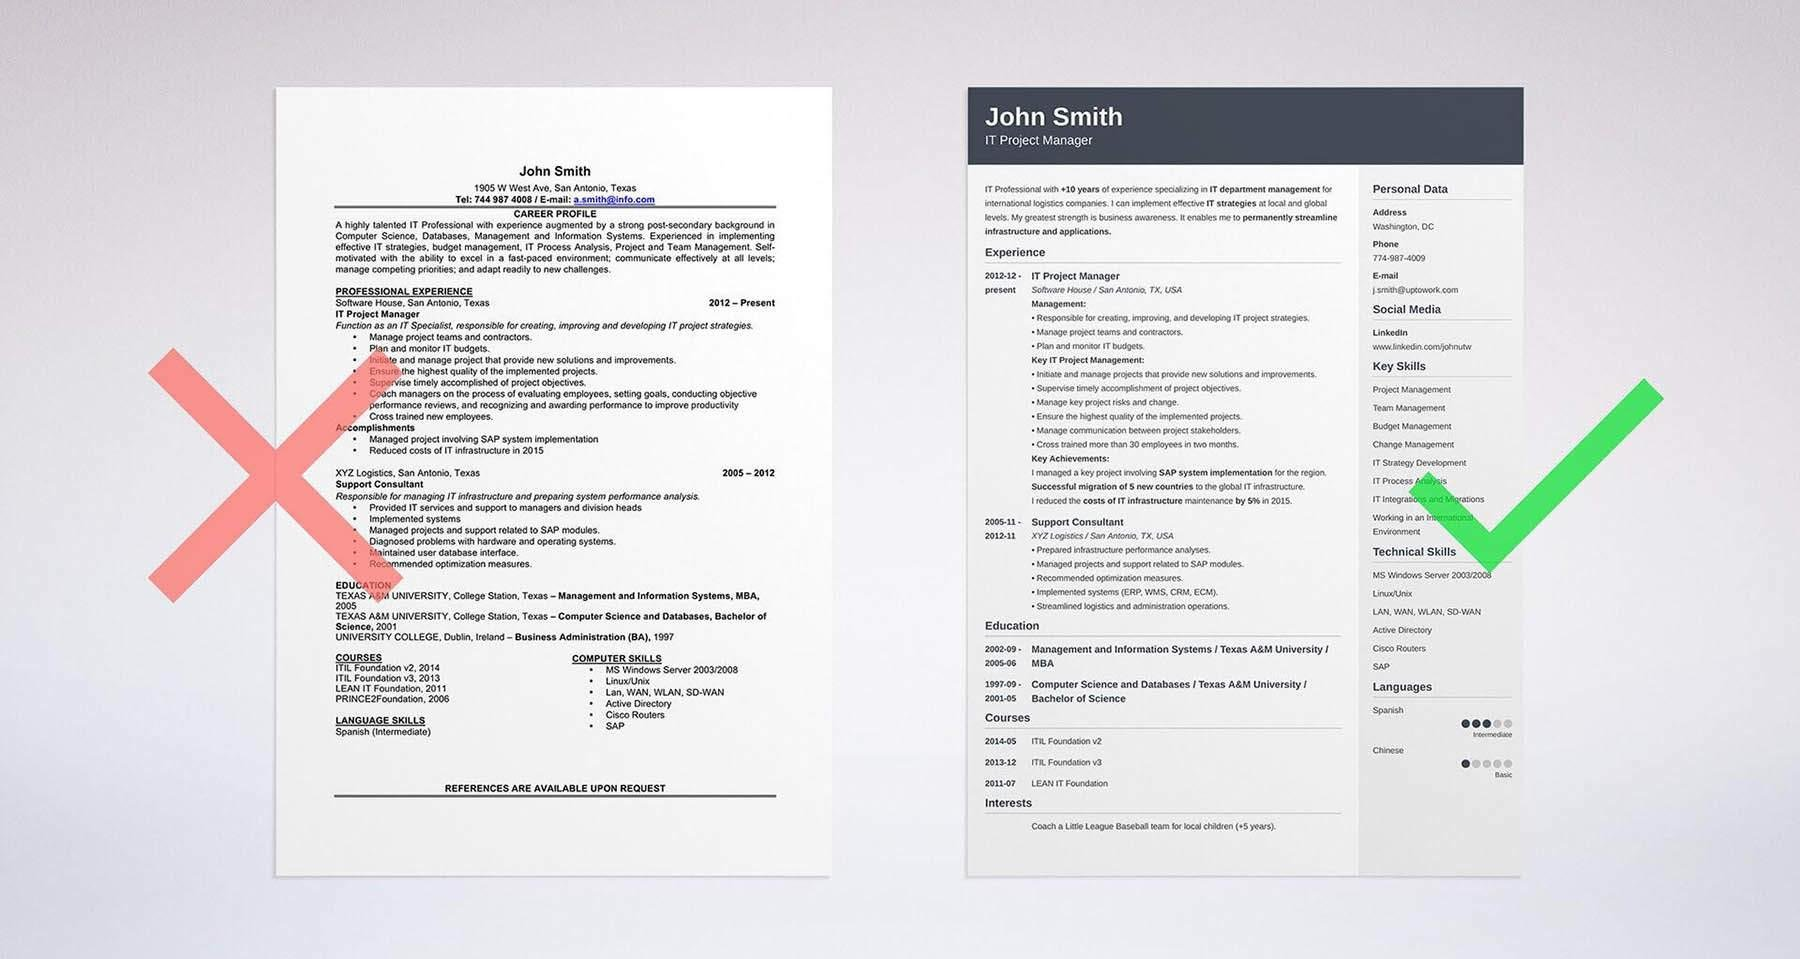 Great Highlight Your Resume Objective With Our Templates   Create Your Resume In  5 Minutes Here. Ideas Resume Objective Sample